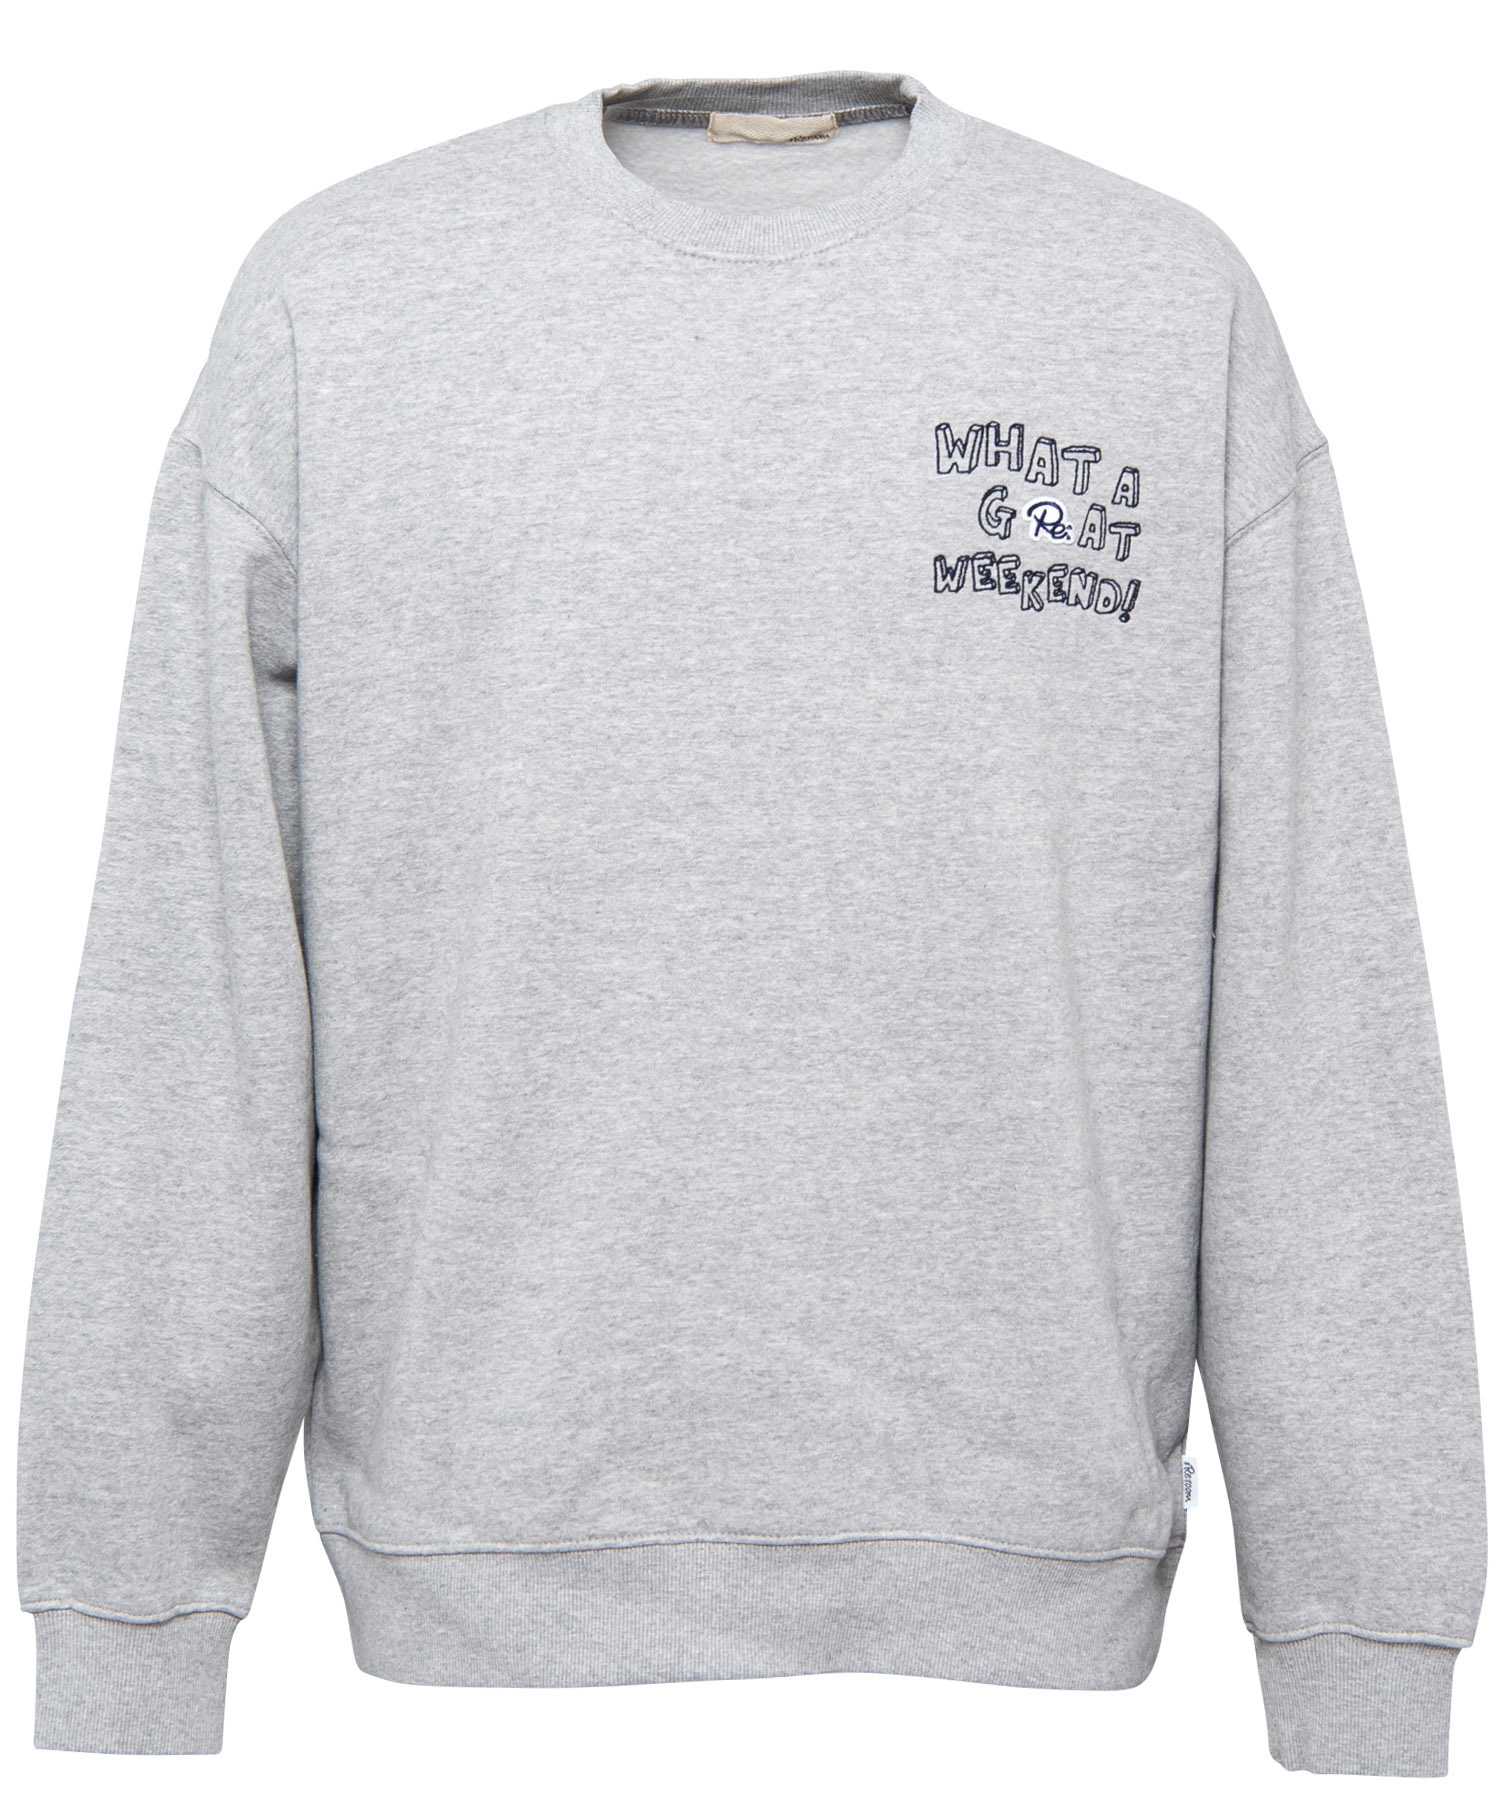 Re:WAPPEN GRAFFITI EMBROIDERY BIG SWEAT[REC244]